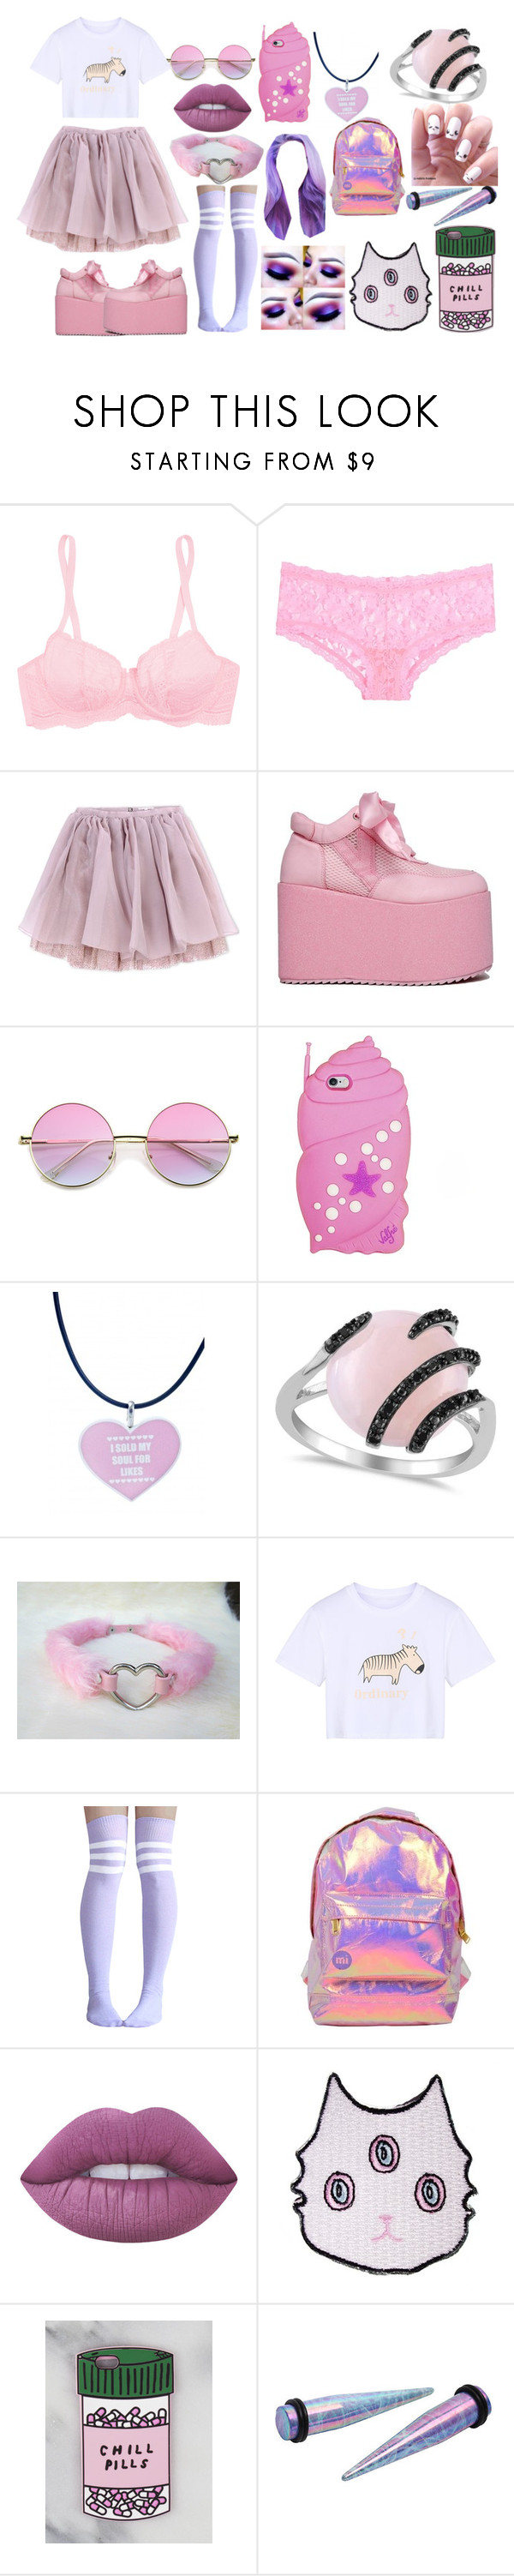 """""""Untitled #755"""" by kaninekiller ❤ liked on Polyvore featuring Cosabella, Hanky Panky, Olympia Le-Tan, ZeroUV, Valfré, Allurez, WithChic, Miss Selfridge and Lime Crime"""